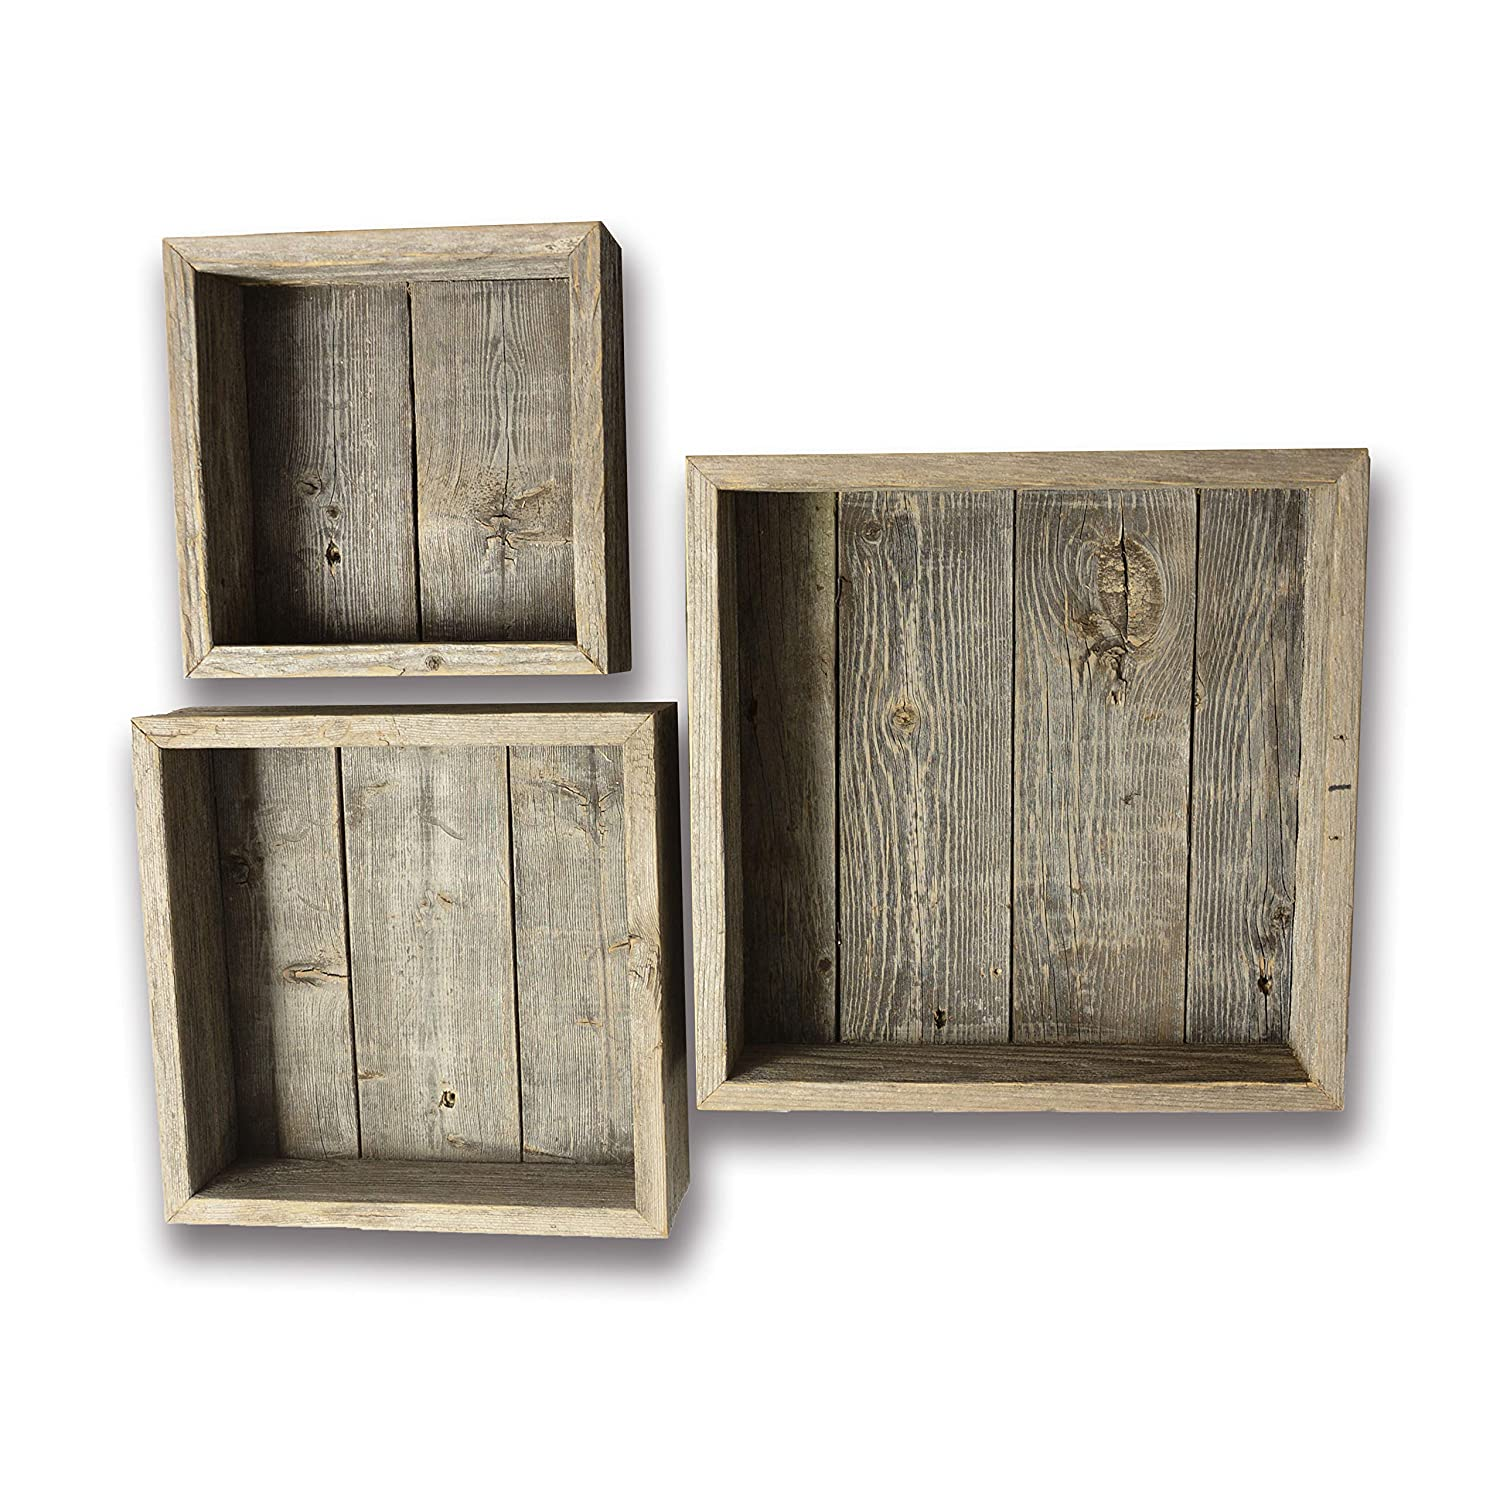 Reclaimed Wood Shadow Box with Wood Backing - Rustic Farmhouse Barn Wood Style - Floating Shelves - Set of 3 Weathered Gray Farm House Box Frames